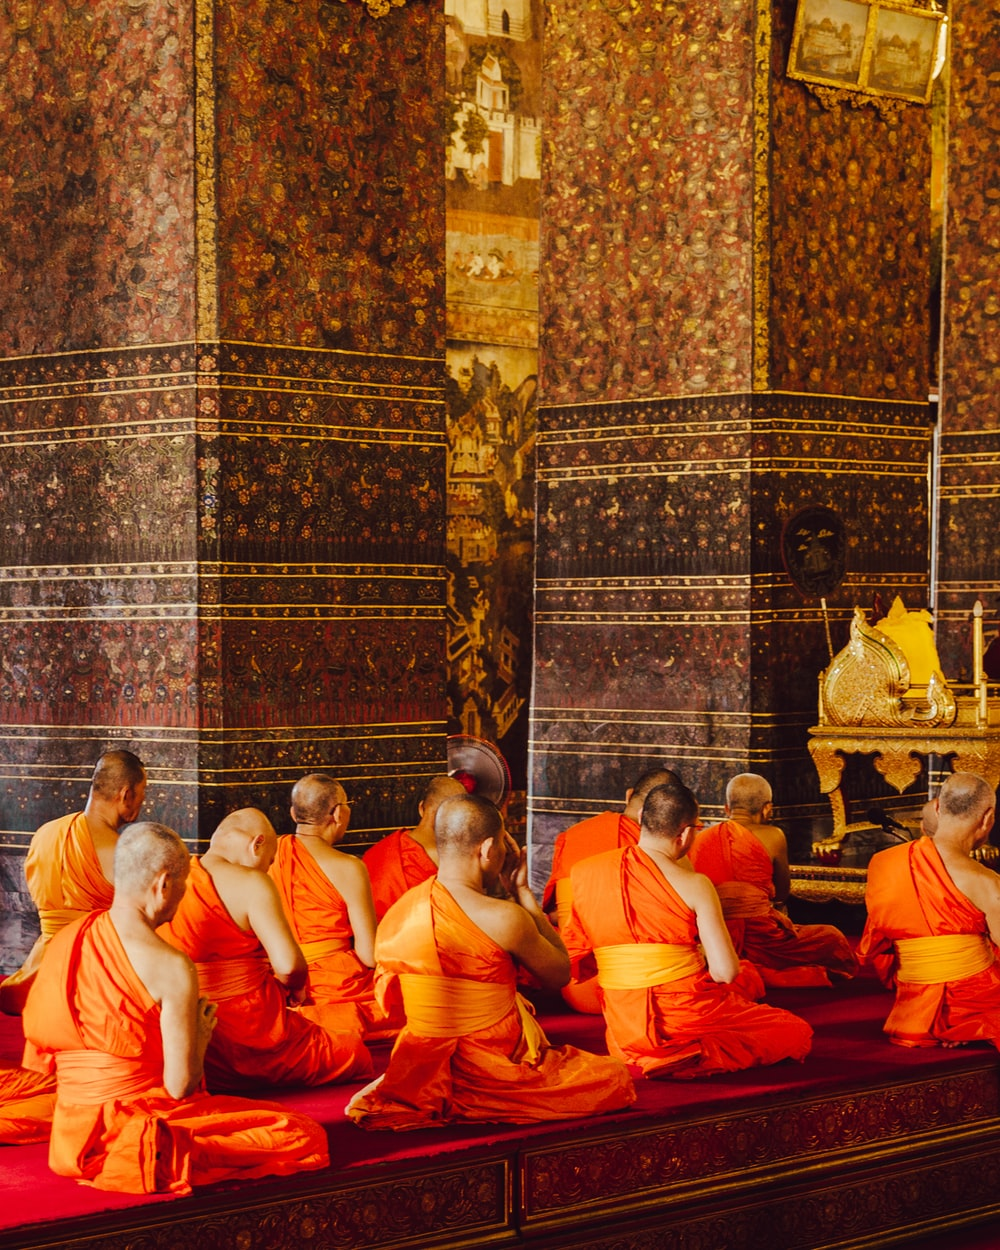 monks in front of altar